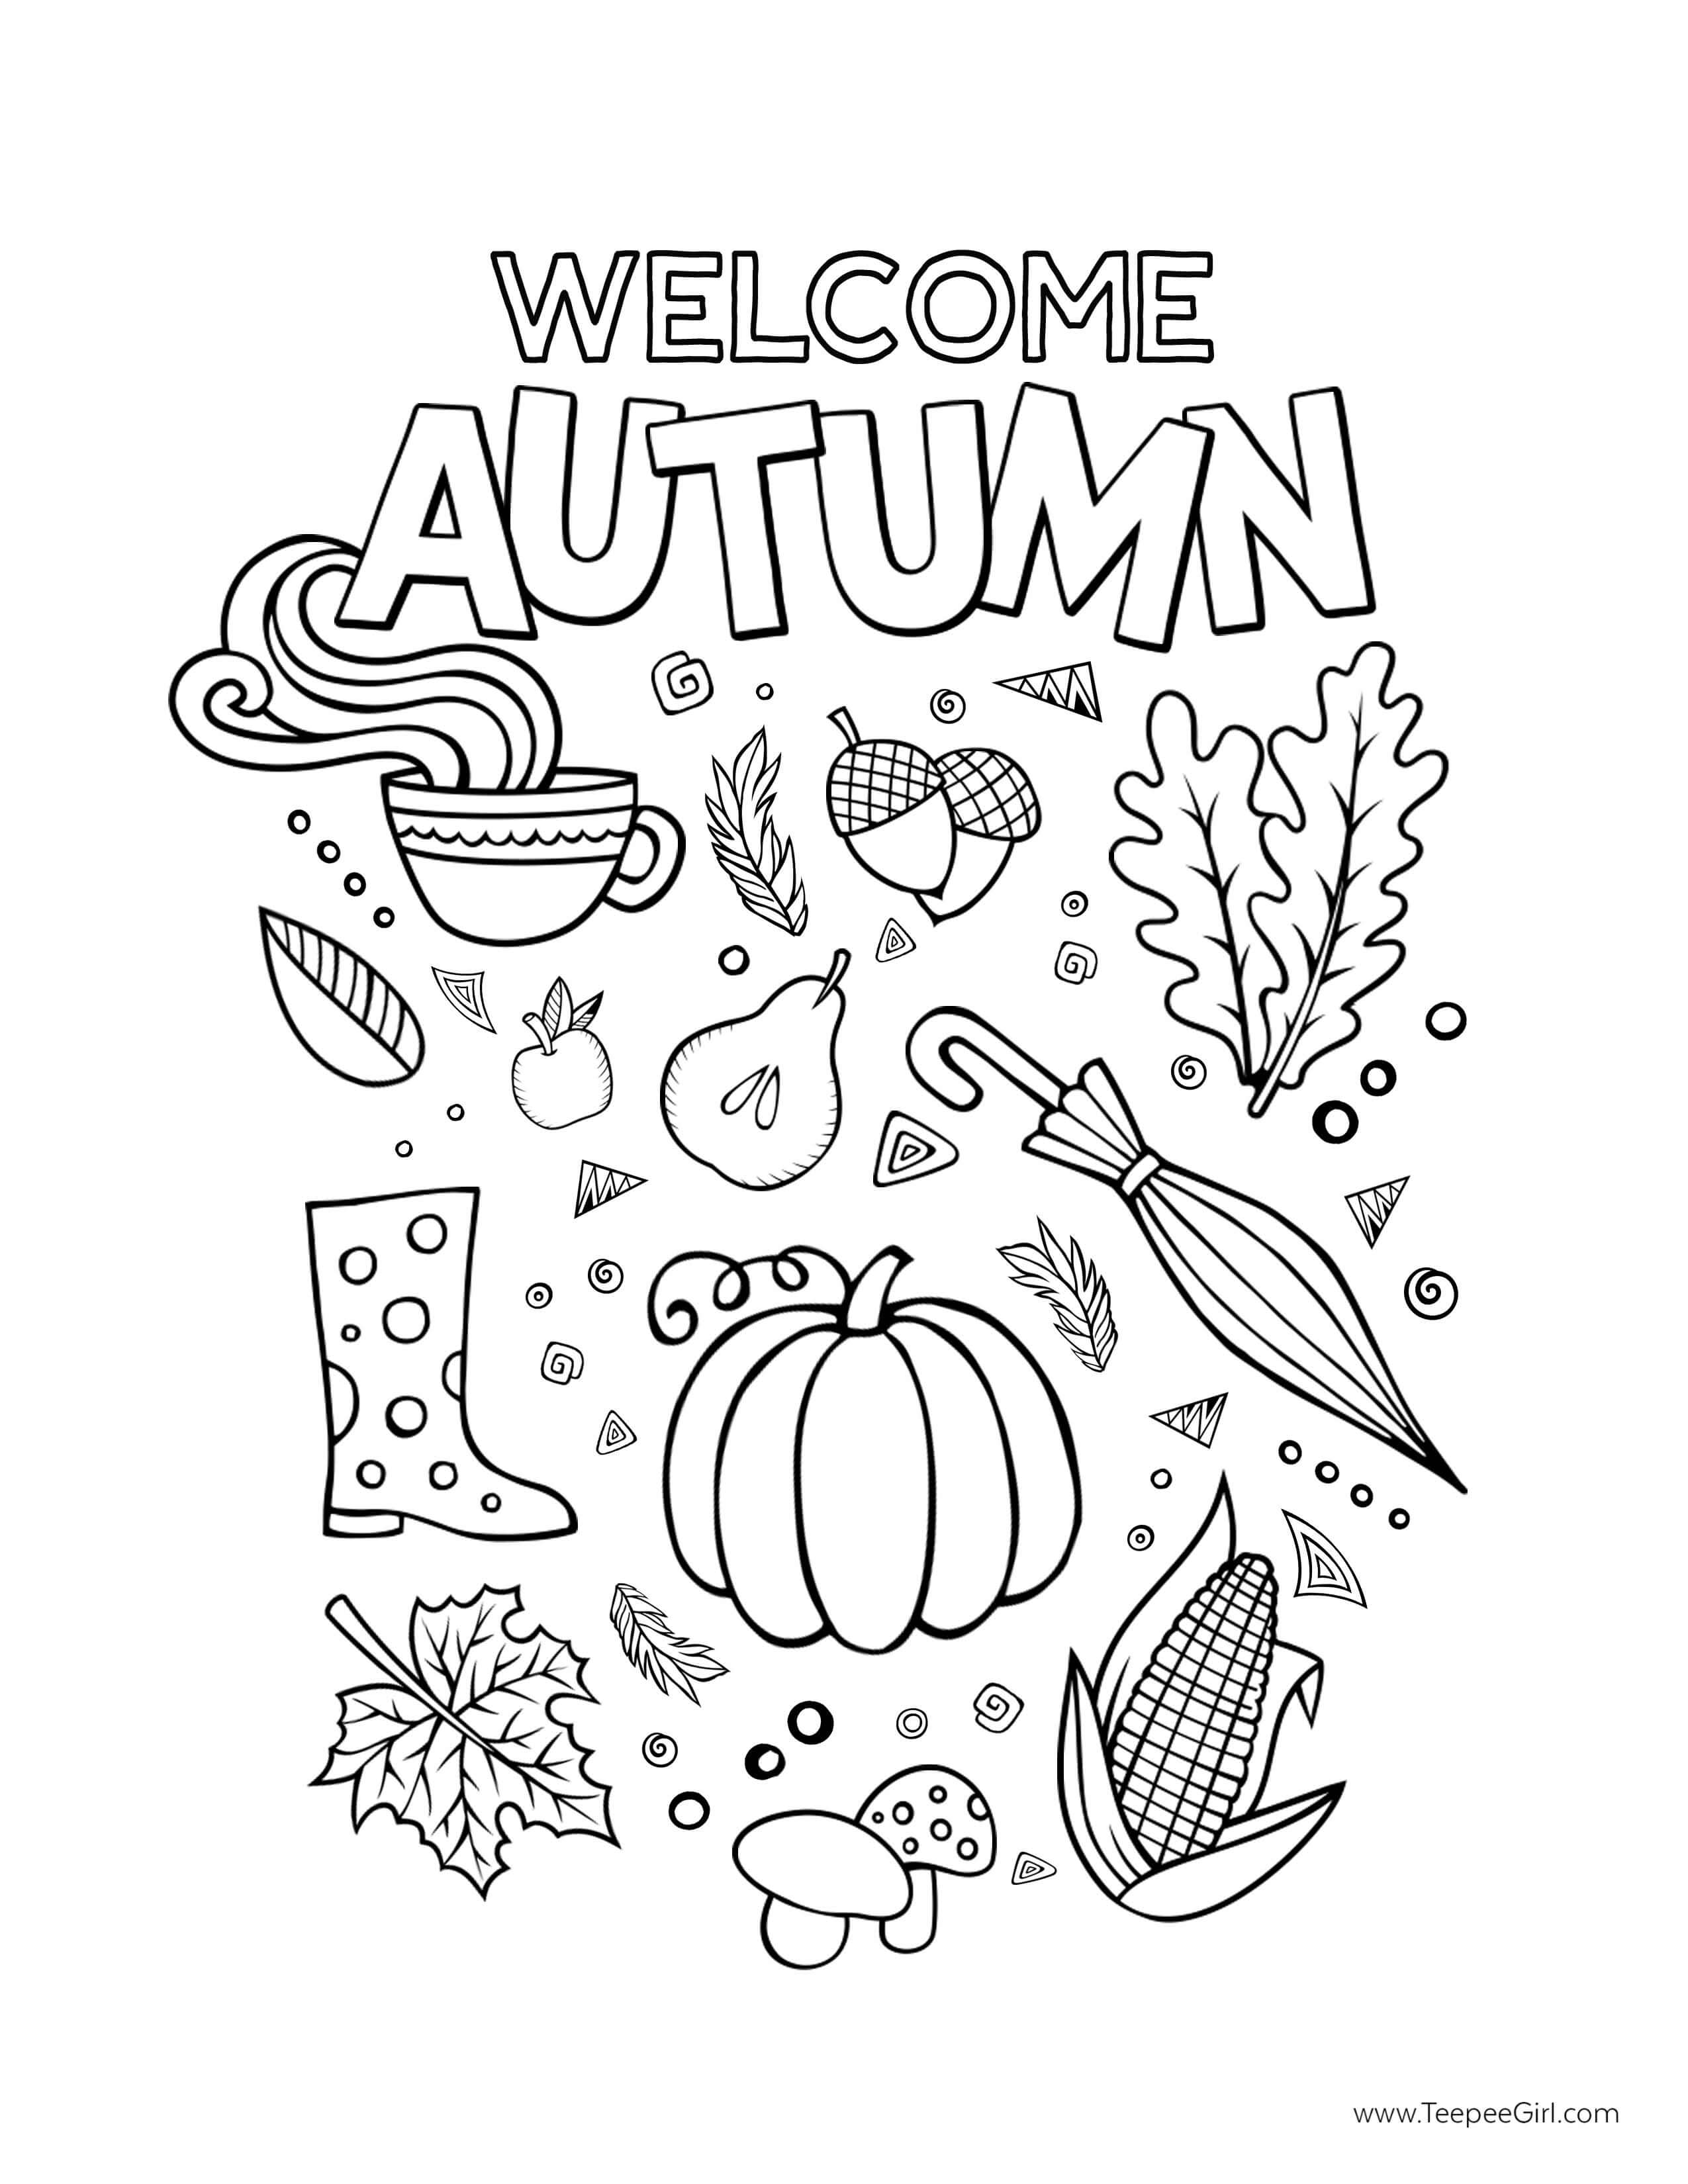 autumn coloring book pages | Free Thanksgiving Coloring Pages - Teepee Girl